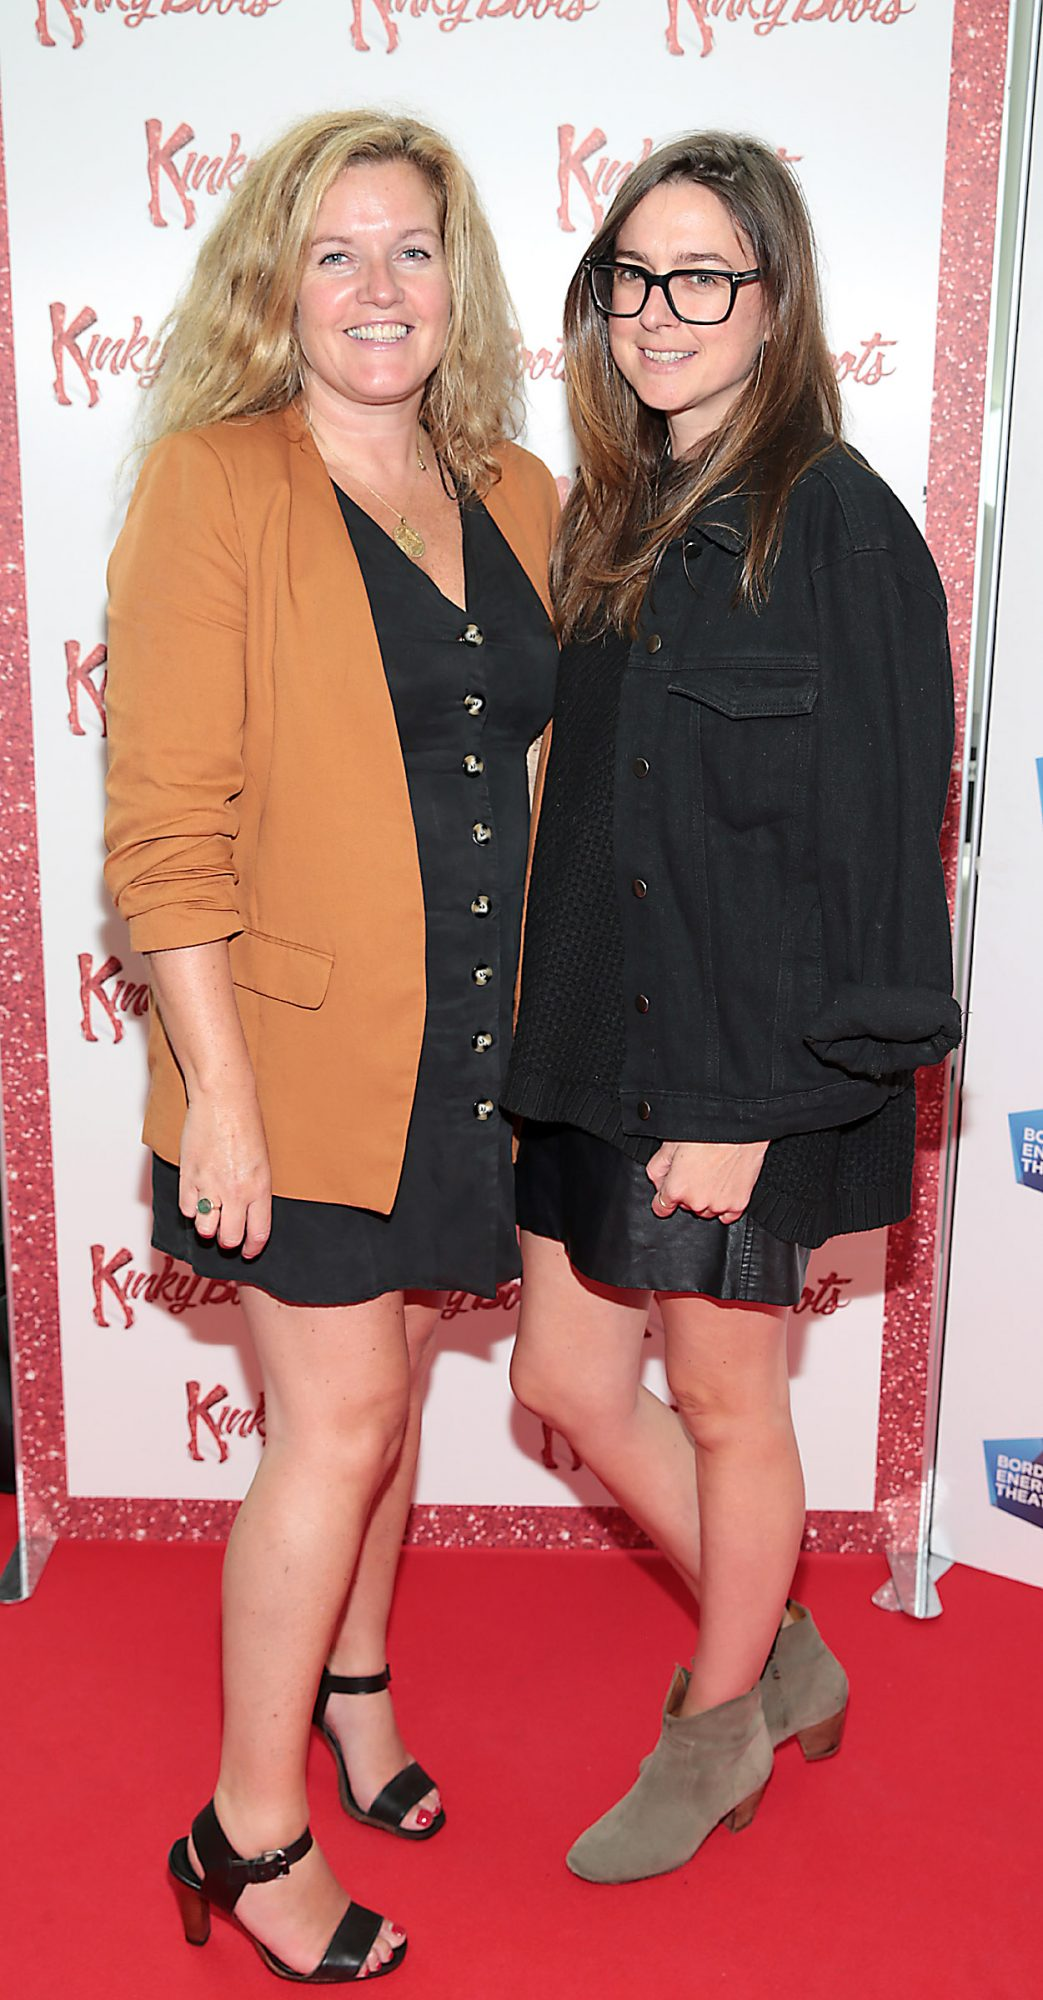 Lynne Hunter and Kellie O Rourke at the opening of the musical Kinky Boots at the Bord Gais Energy Theatre, Dublin.  Picture: Brian McEvoy